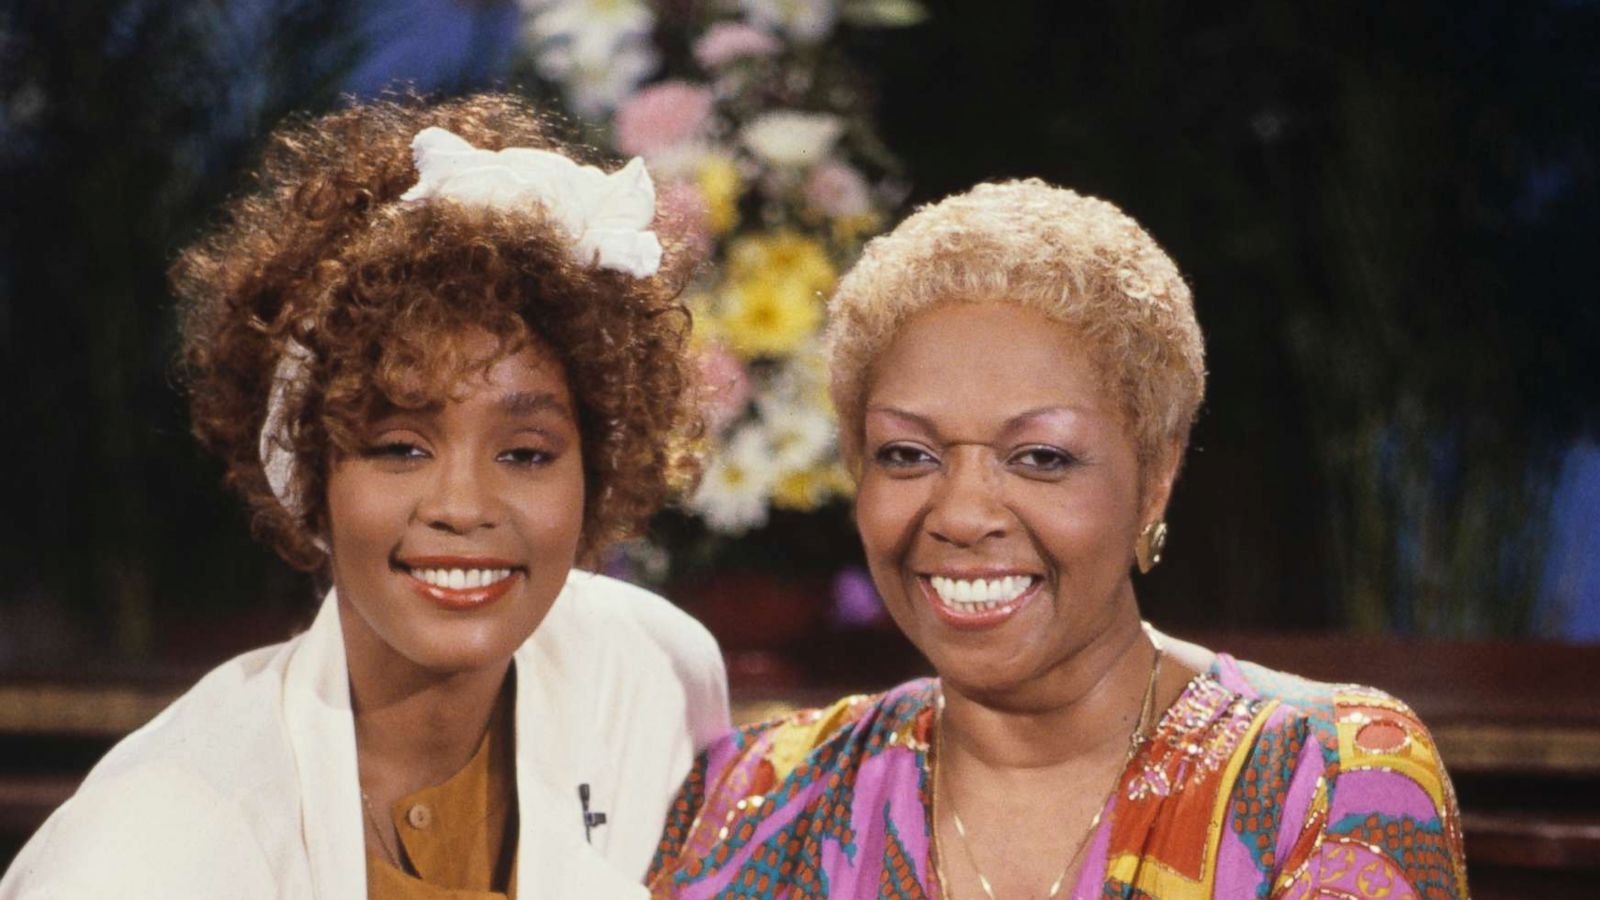 Whitney Houston S Mother Cissy Houston Felt Horror After Learning Singer Was Allegedly Molested As A Child Gma